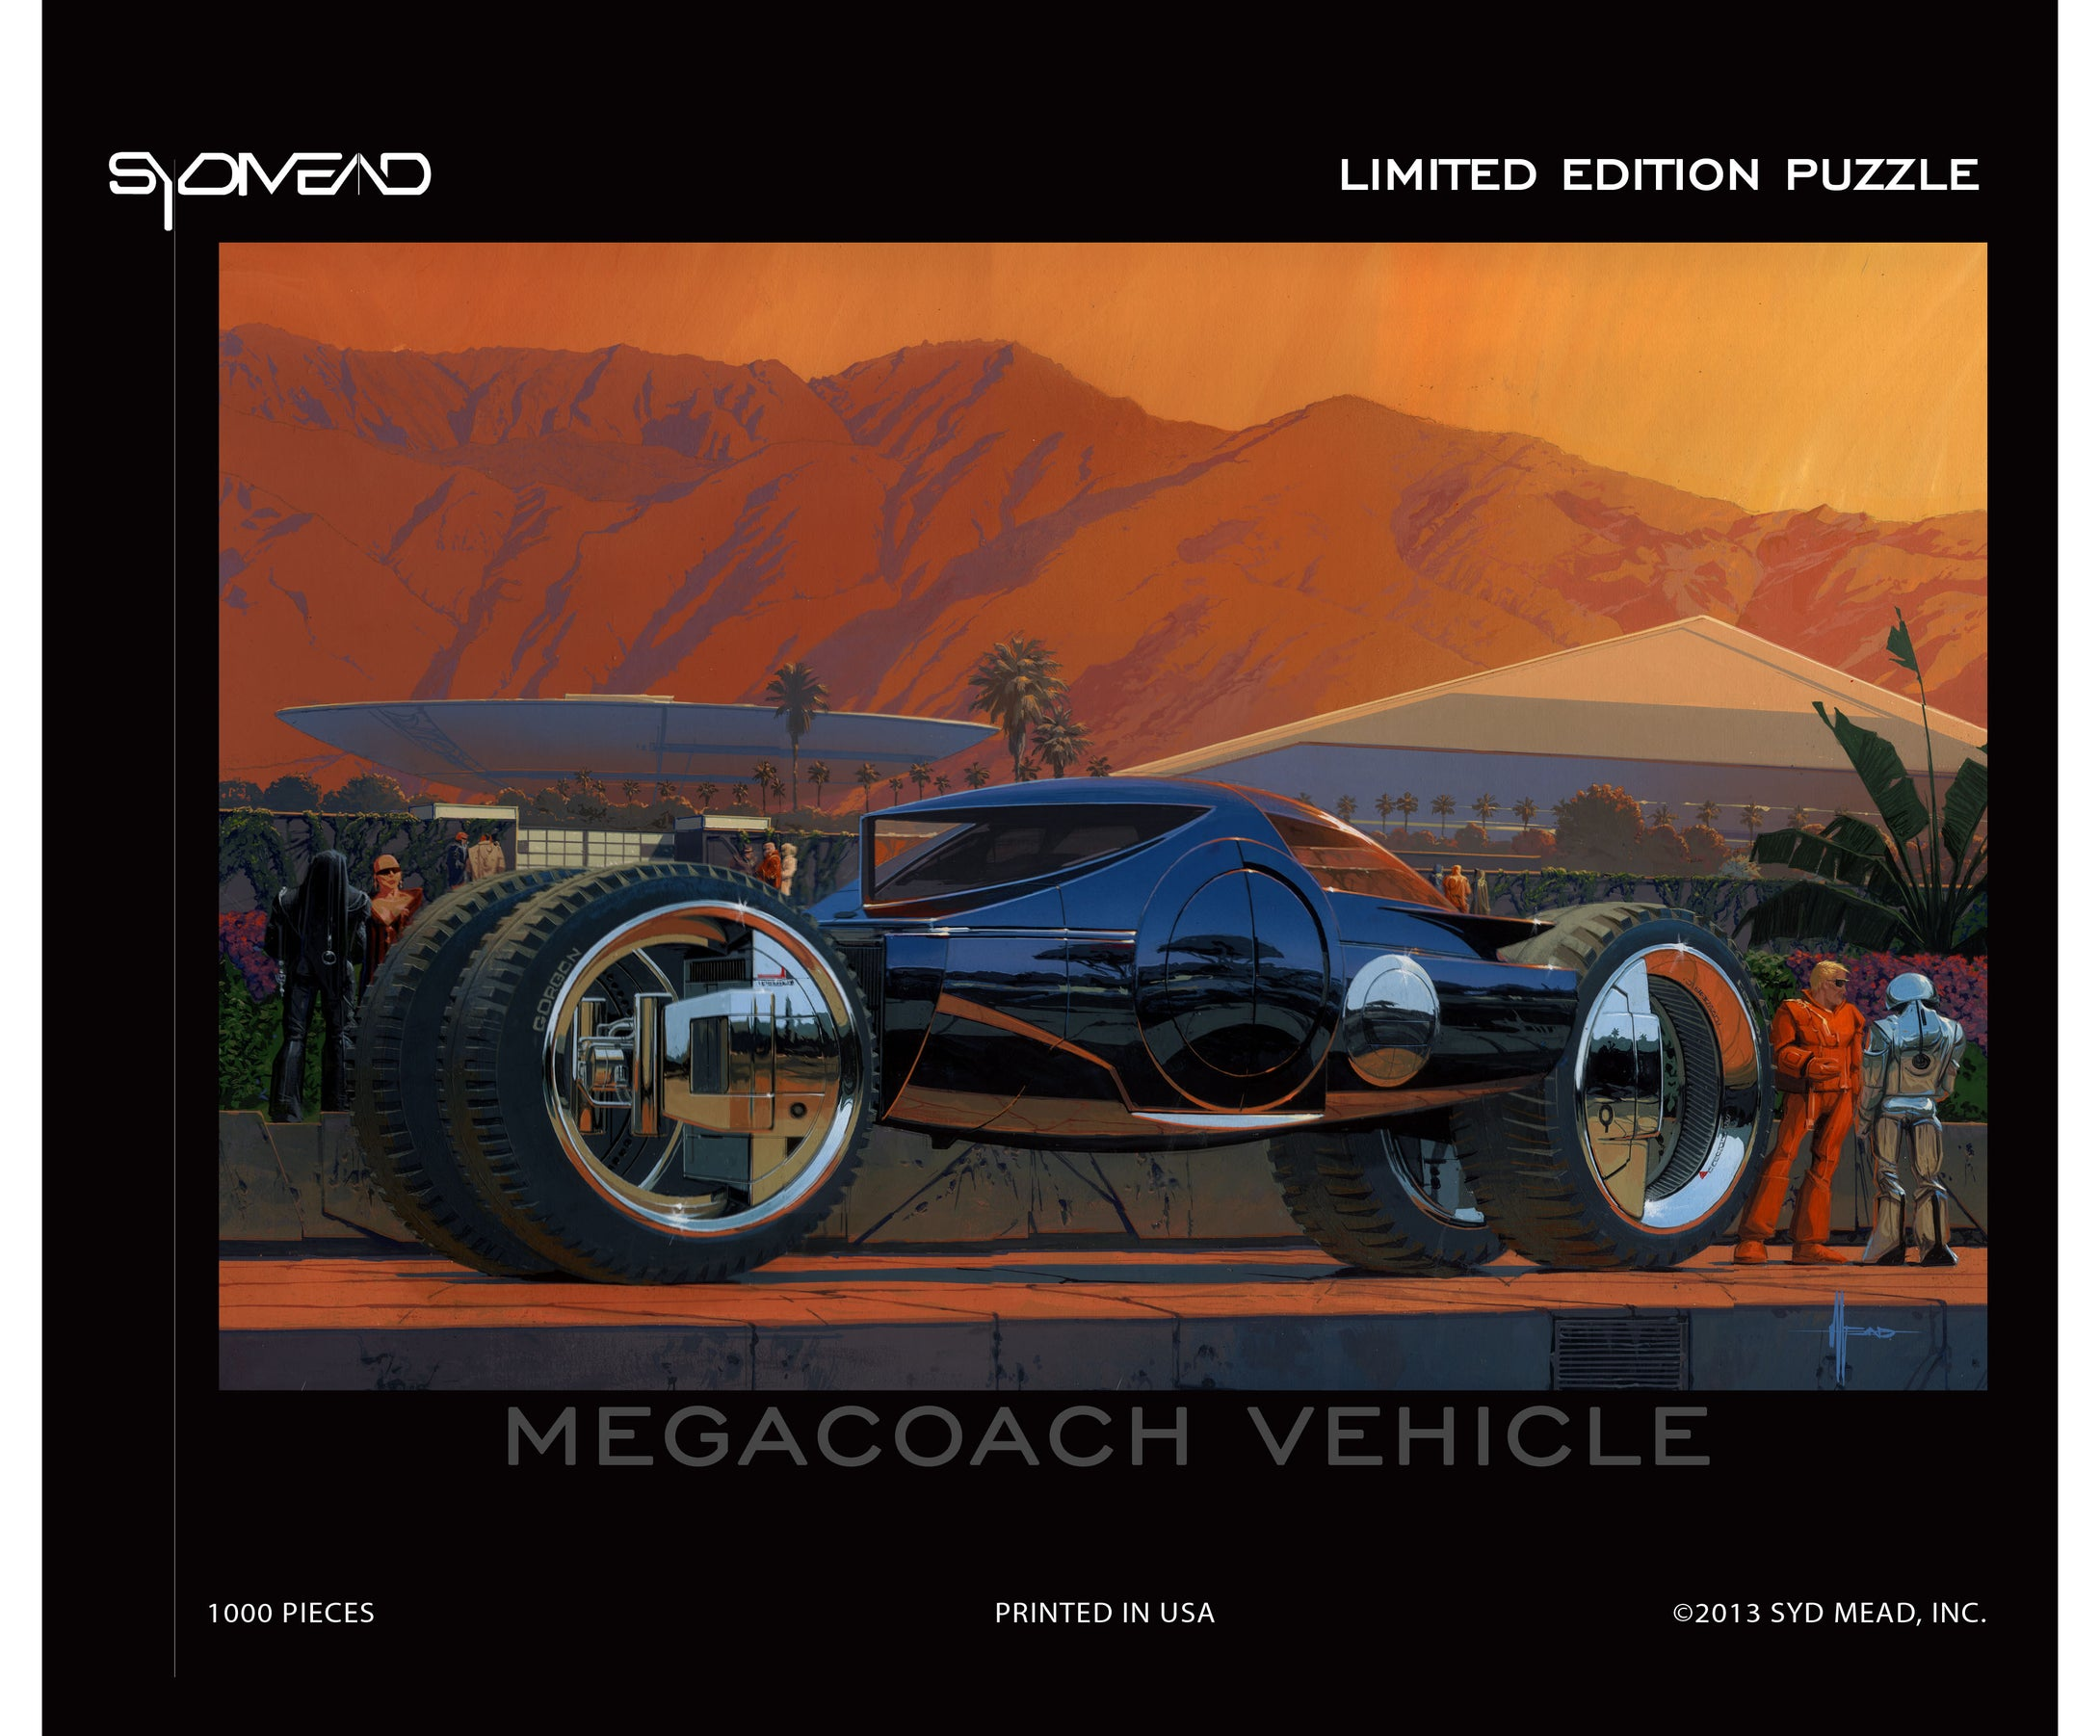 Syd Mead limited edition puzzle: Megacoach